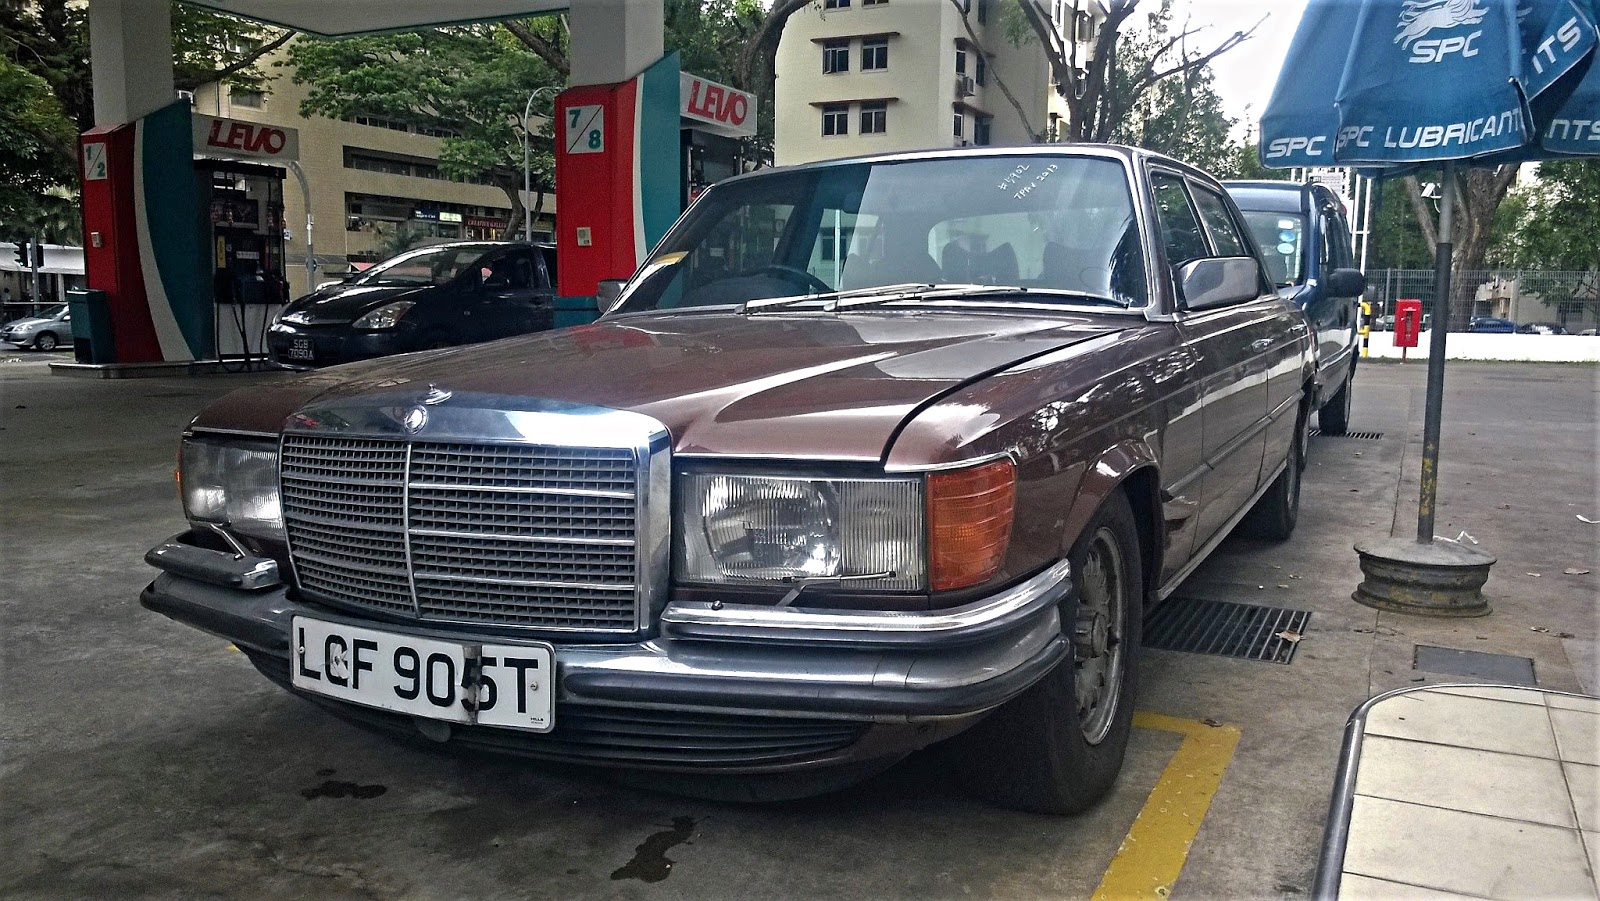 Singapore Vintage and Classic Cars: More than an old car #32 ...